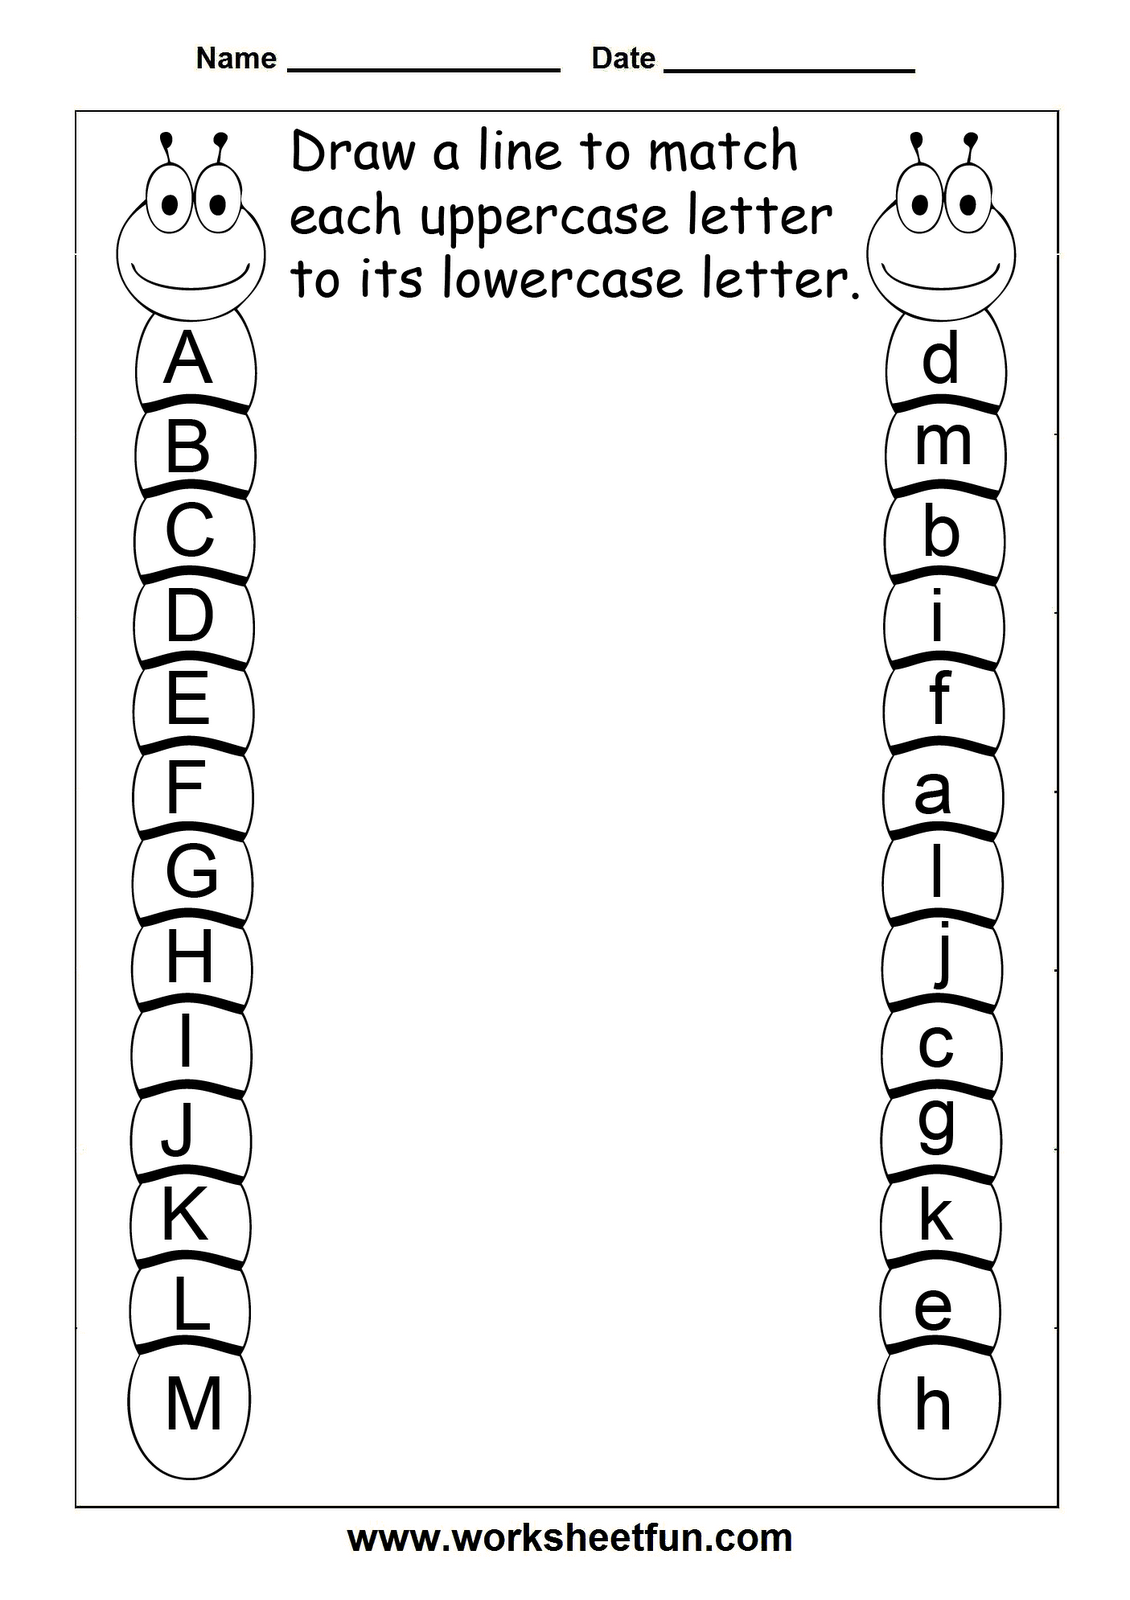 Worksheets Letter Identification Worksheets alphabet letter recognition worksheets delwfg com 8 best images of free printable sheets